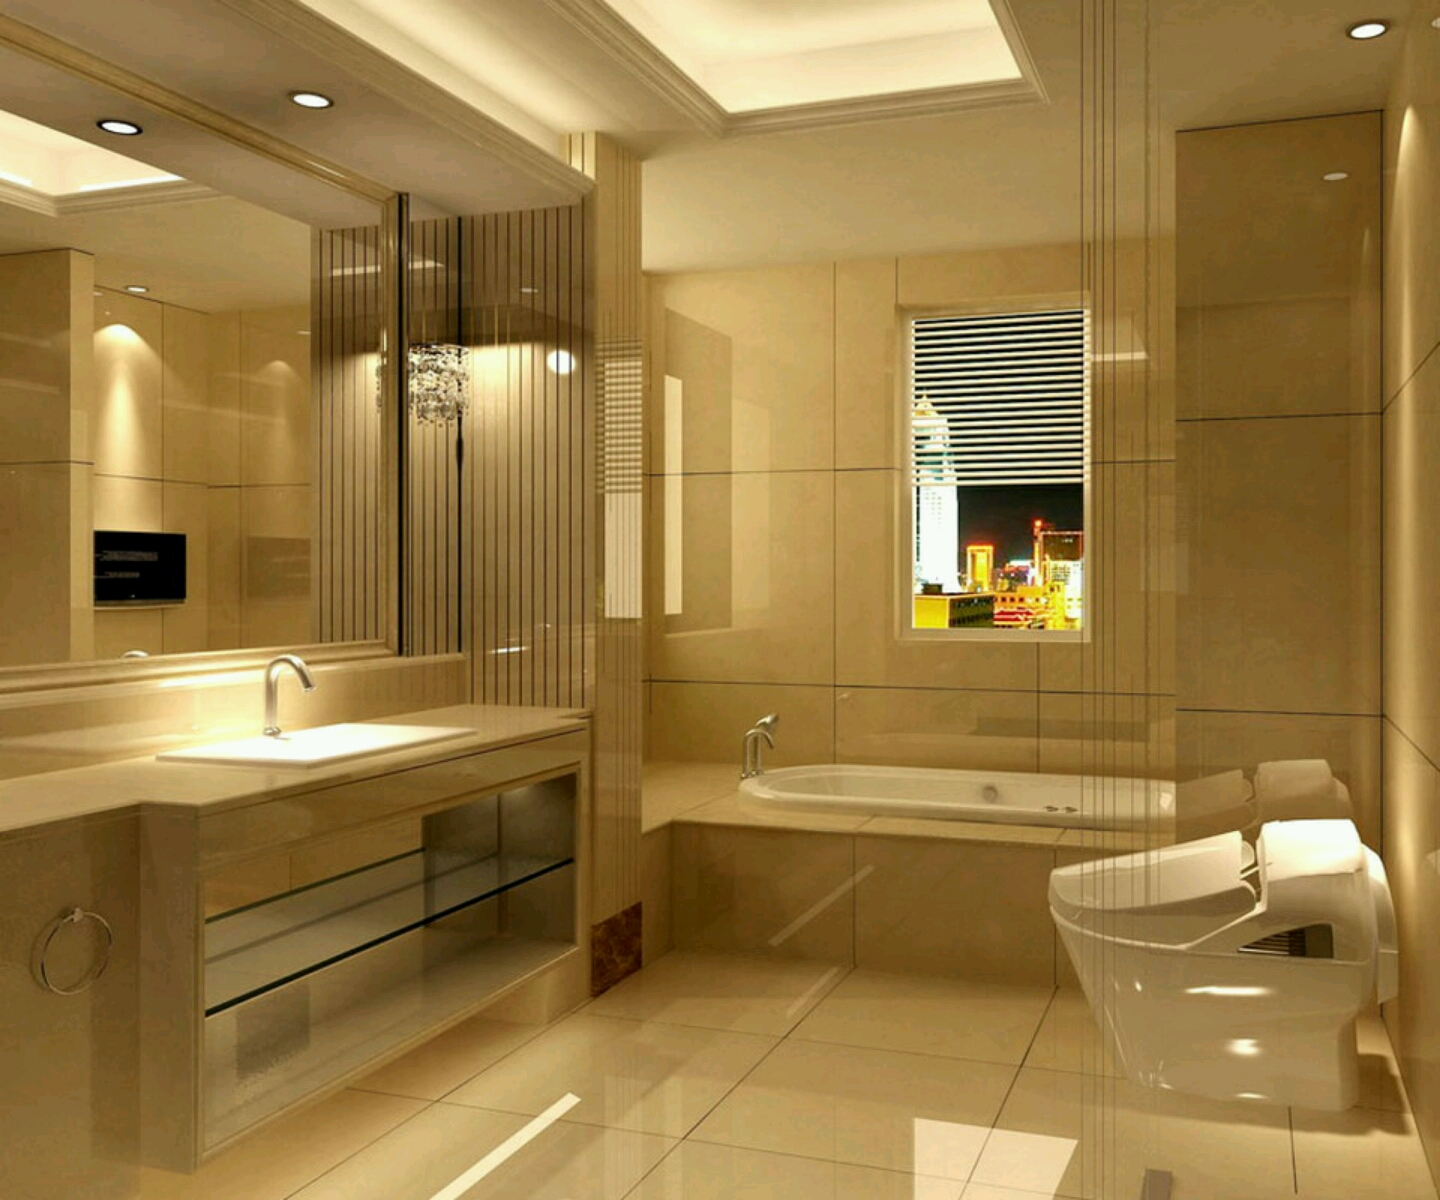 Modern bathrooms setting ideas furniture gallery for Modern bathroom designs